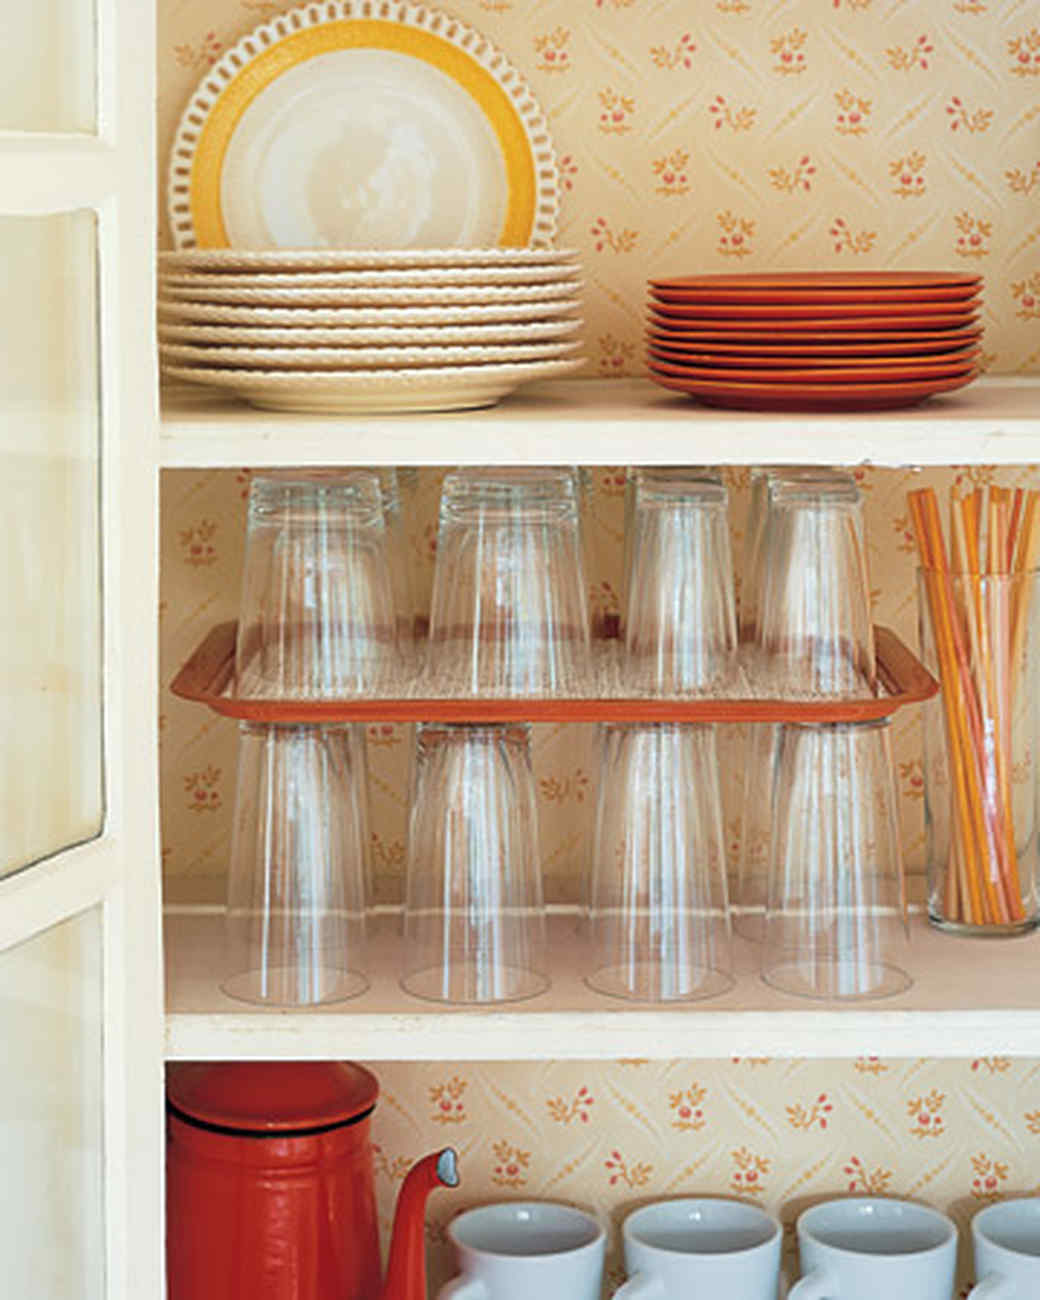 Kitchen Cabinet Organization Ideas: Organize Your Kitchen Cabinets In 11 Easy Steps